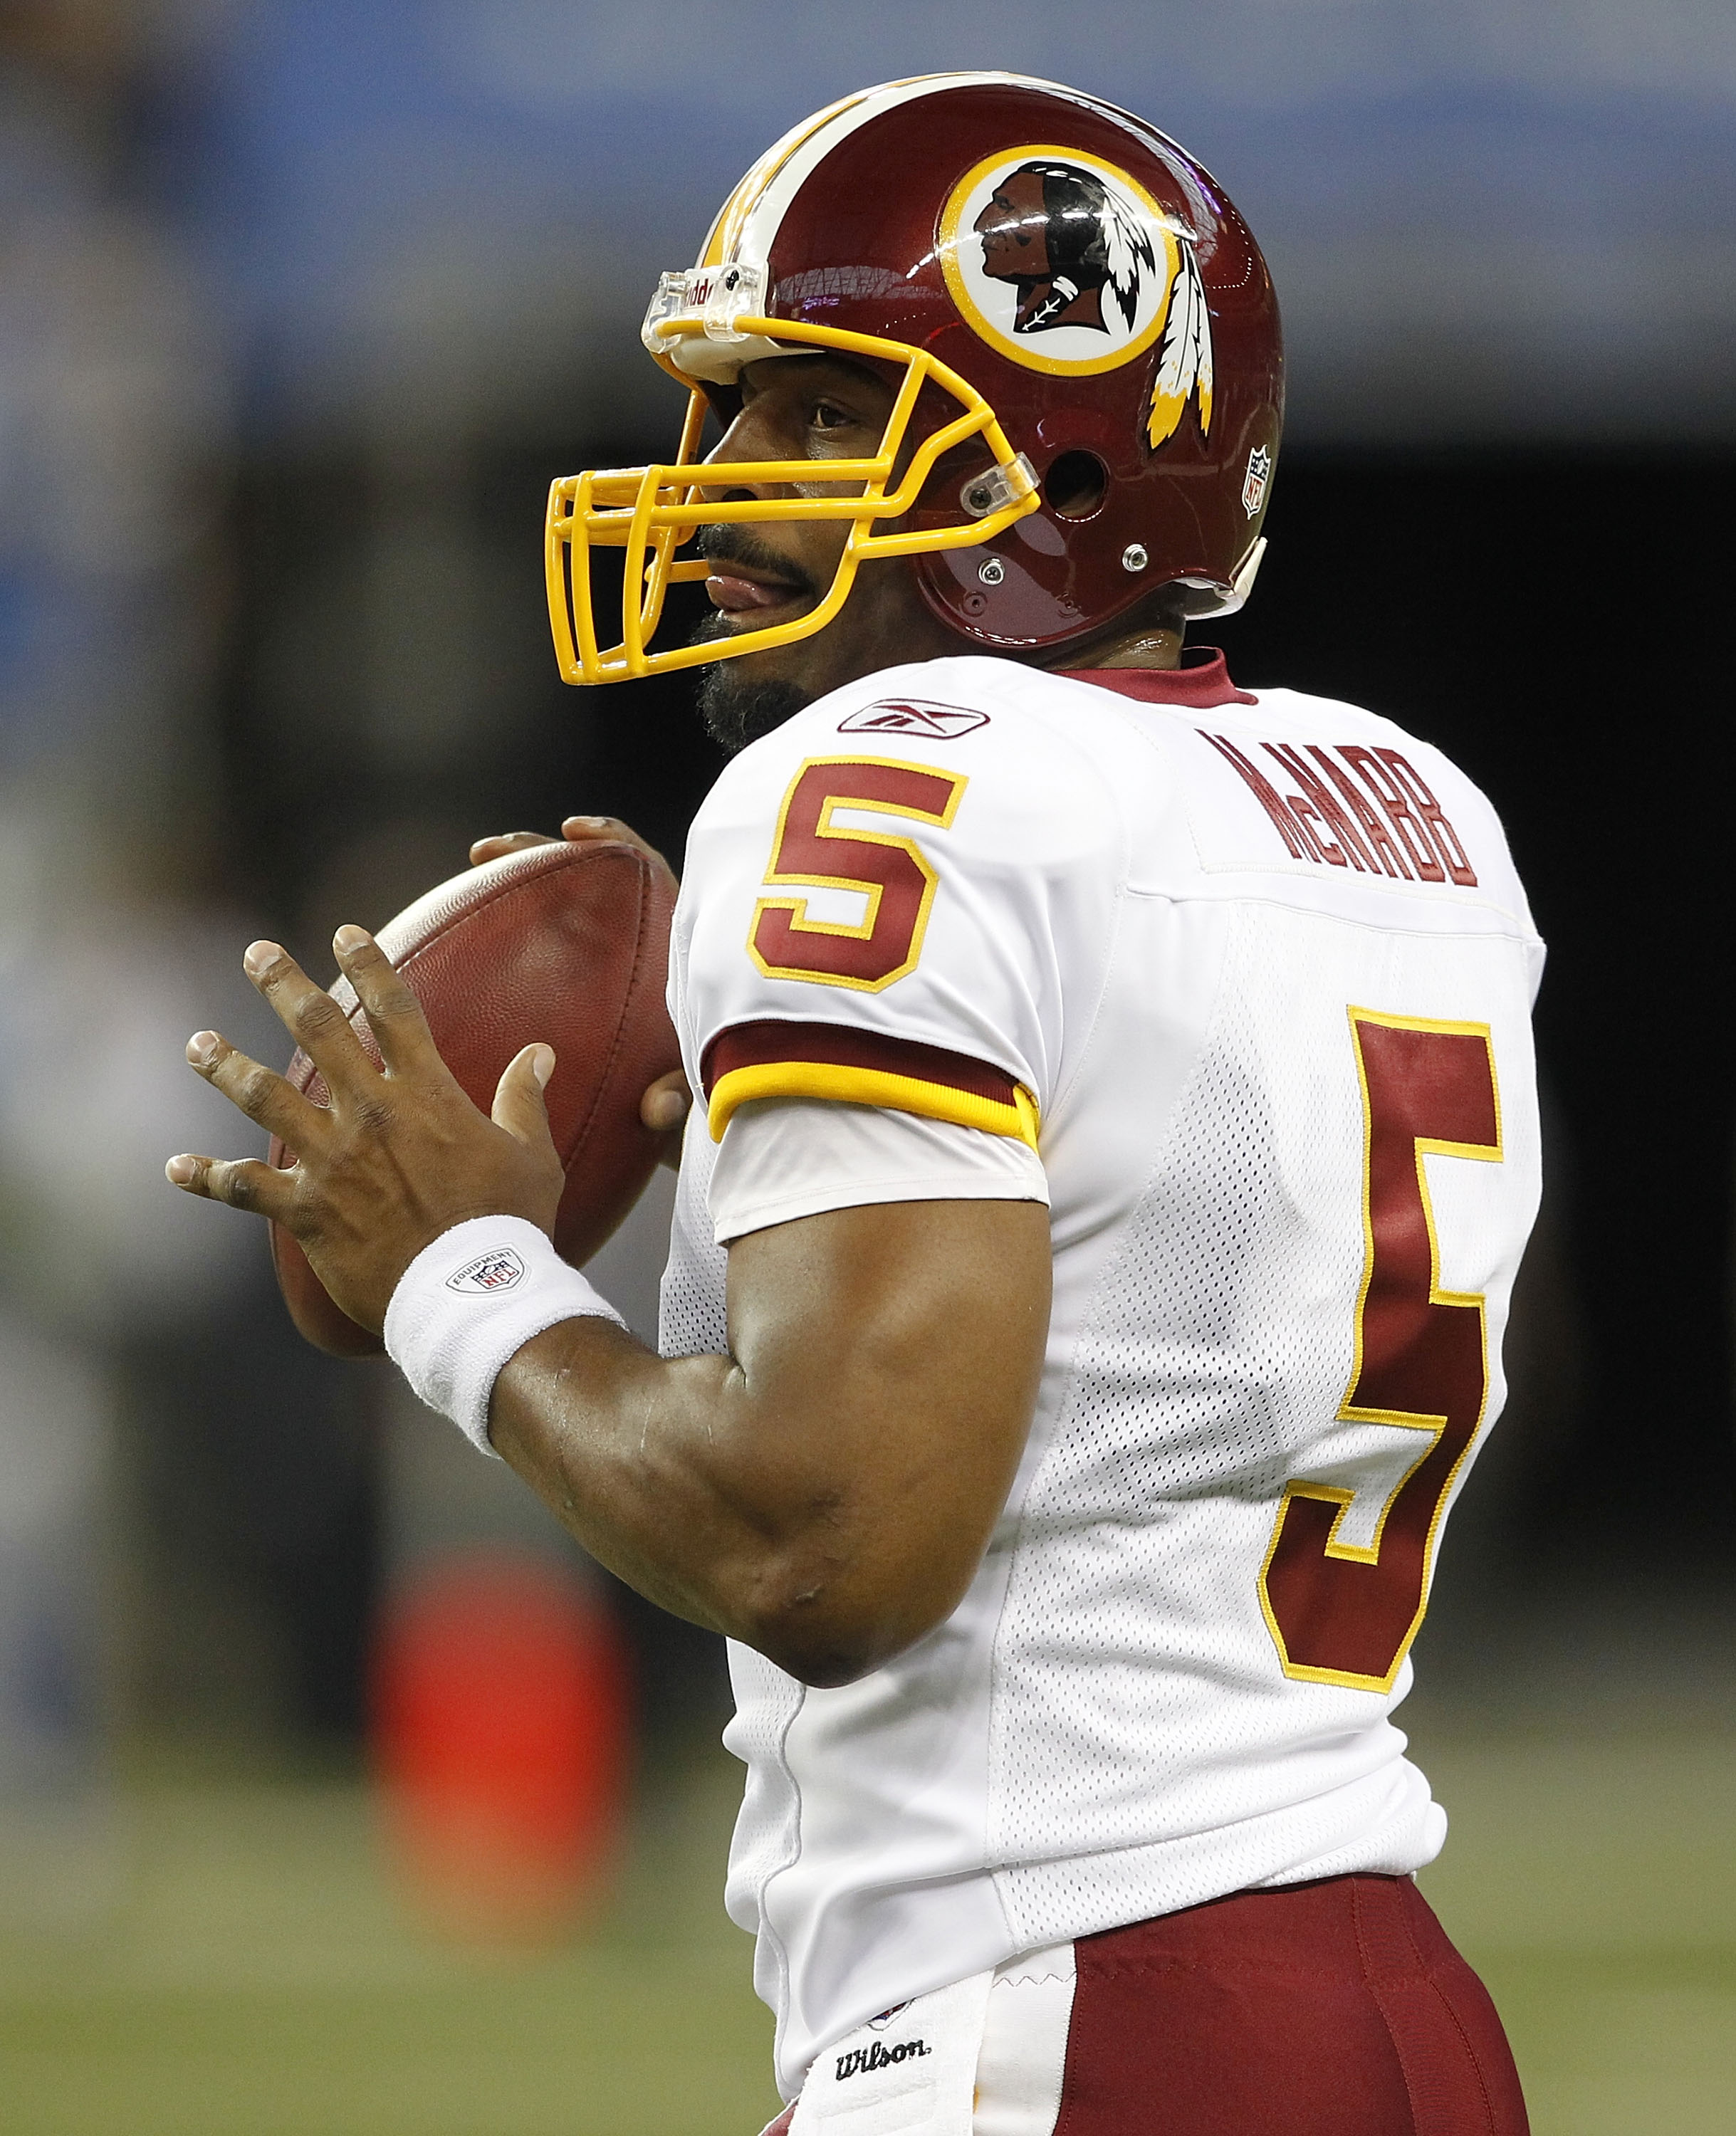 DETROIT - OCTOBER 31: Donovan McNabb #5 of the Washigton Redkins warms up prior to the start of the game against the Detroit Lions at Ford Field on October 31, 2010 in Detroit, Michigan. (Photo by Leon Halip/Getty Images)